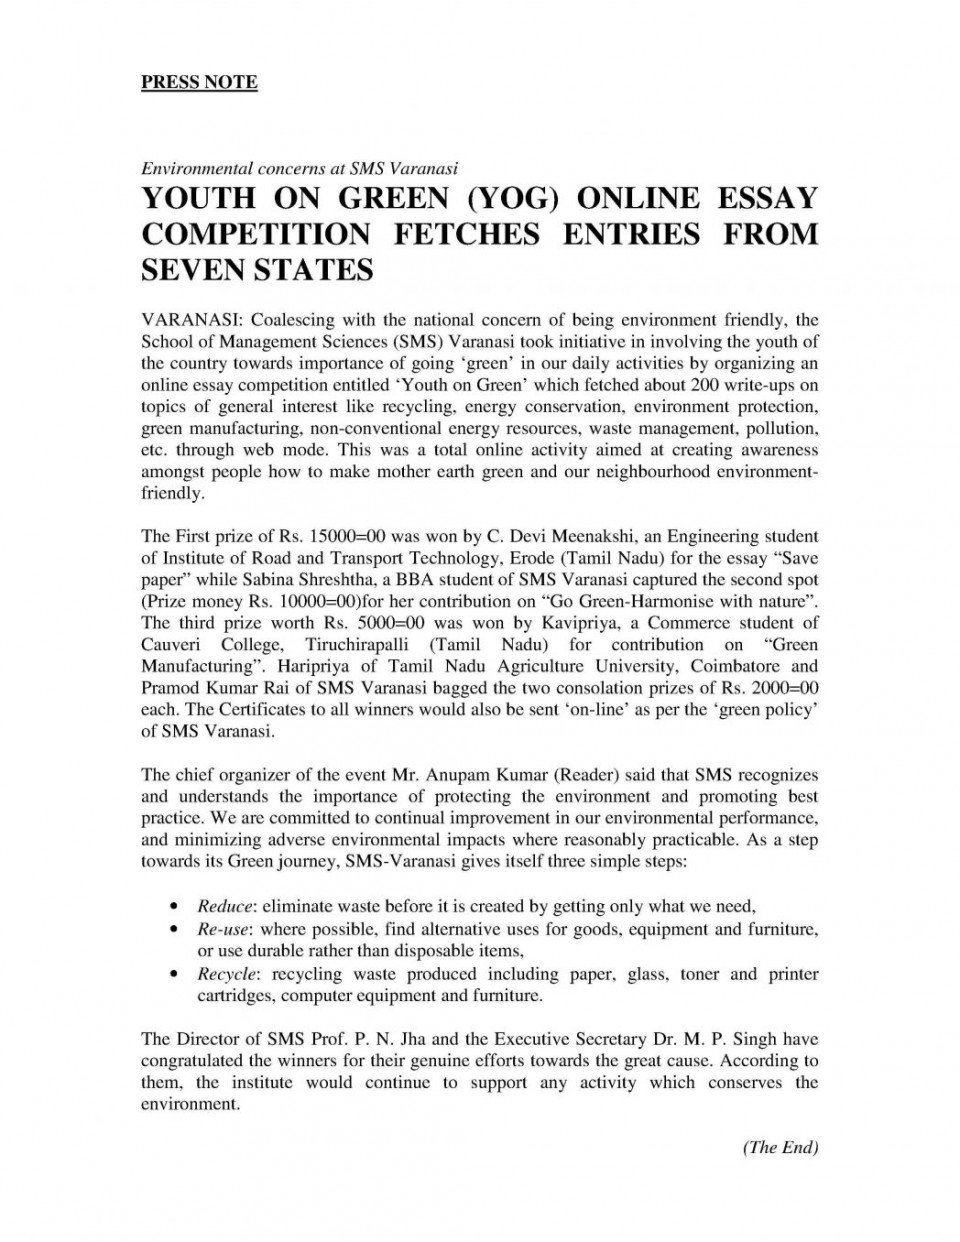 020 Best Essays For College Essay On Good Habits How Tot Application Online Yog Press Re About Yourself Examples Your Background Failure Prompt Off Hook 1048x1356 Example Amazing To Start An A Definition With Quote 960